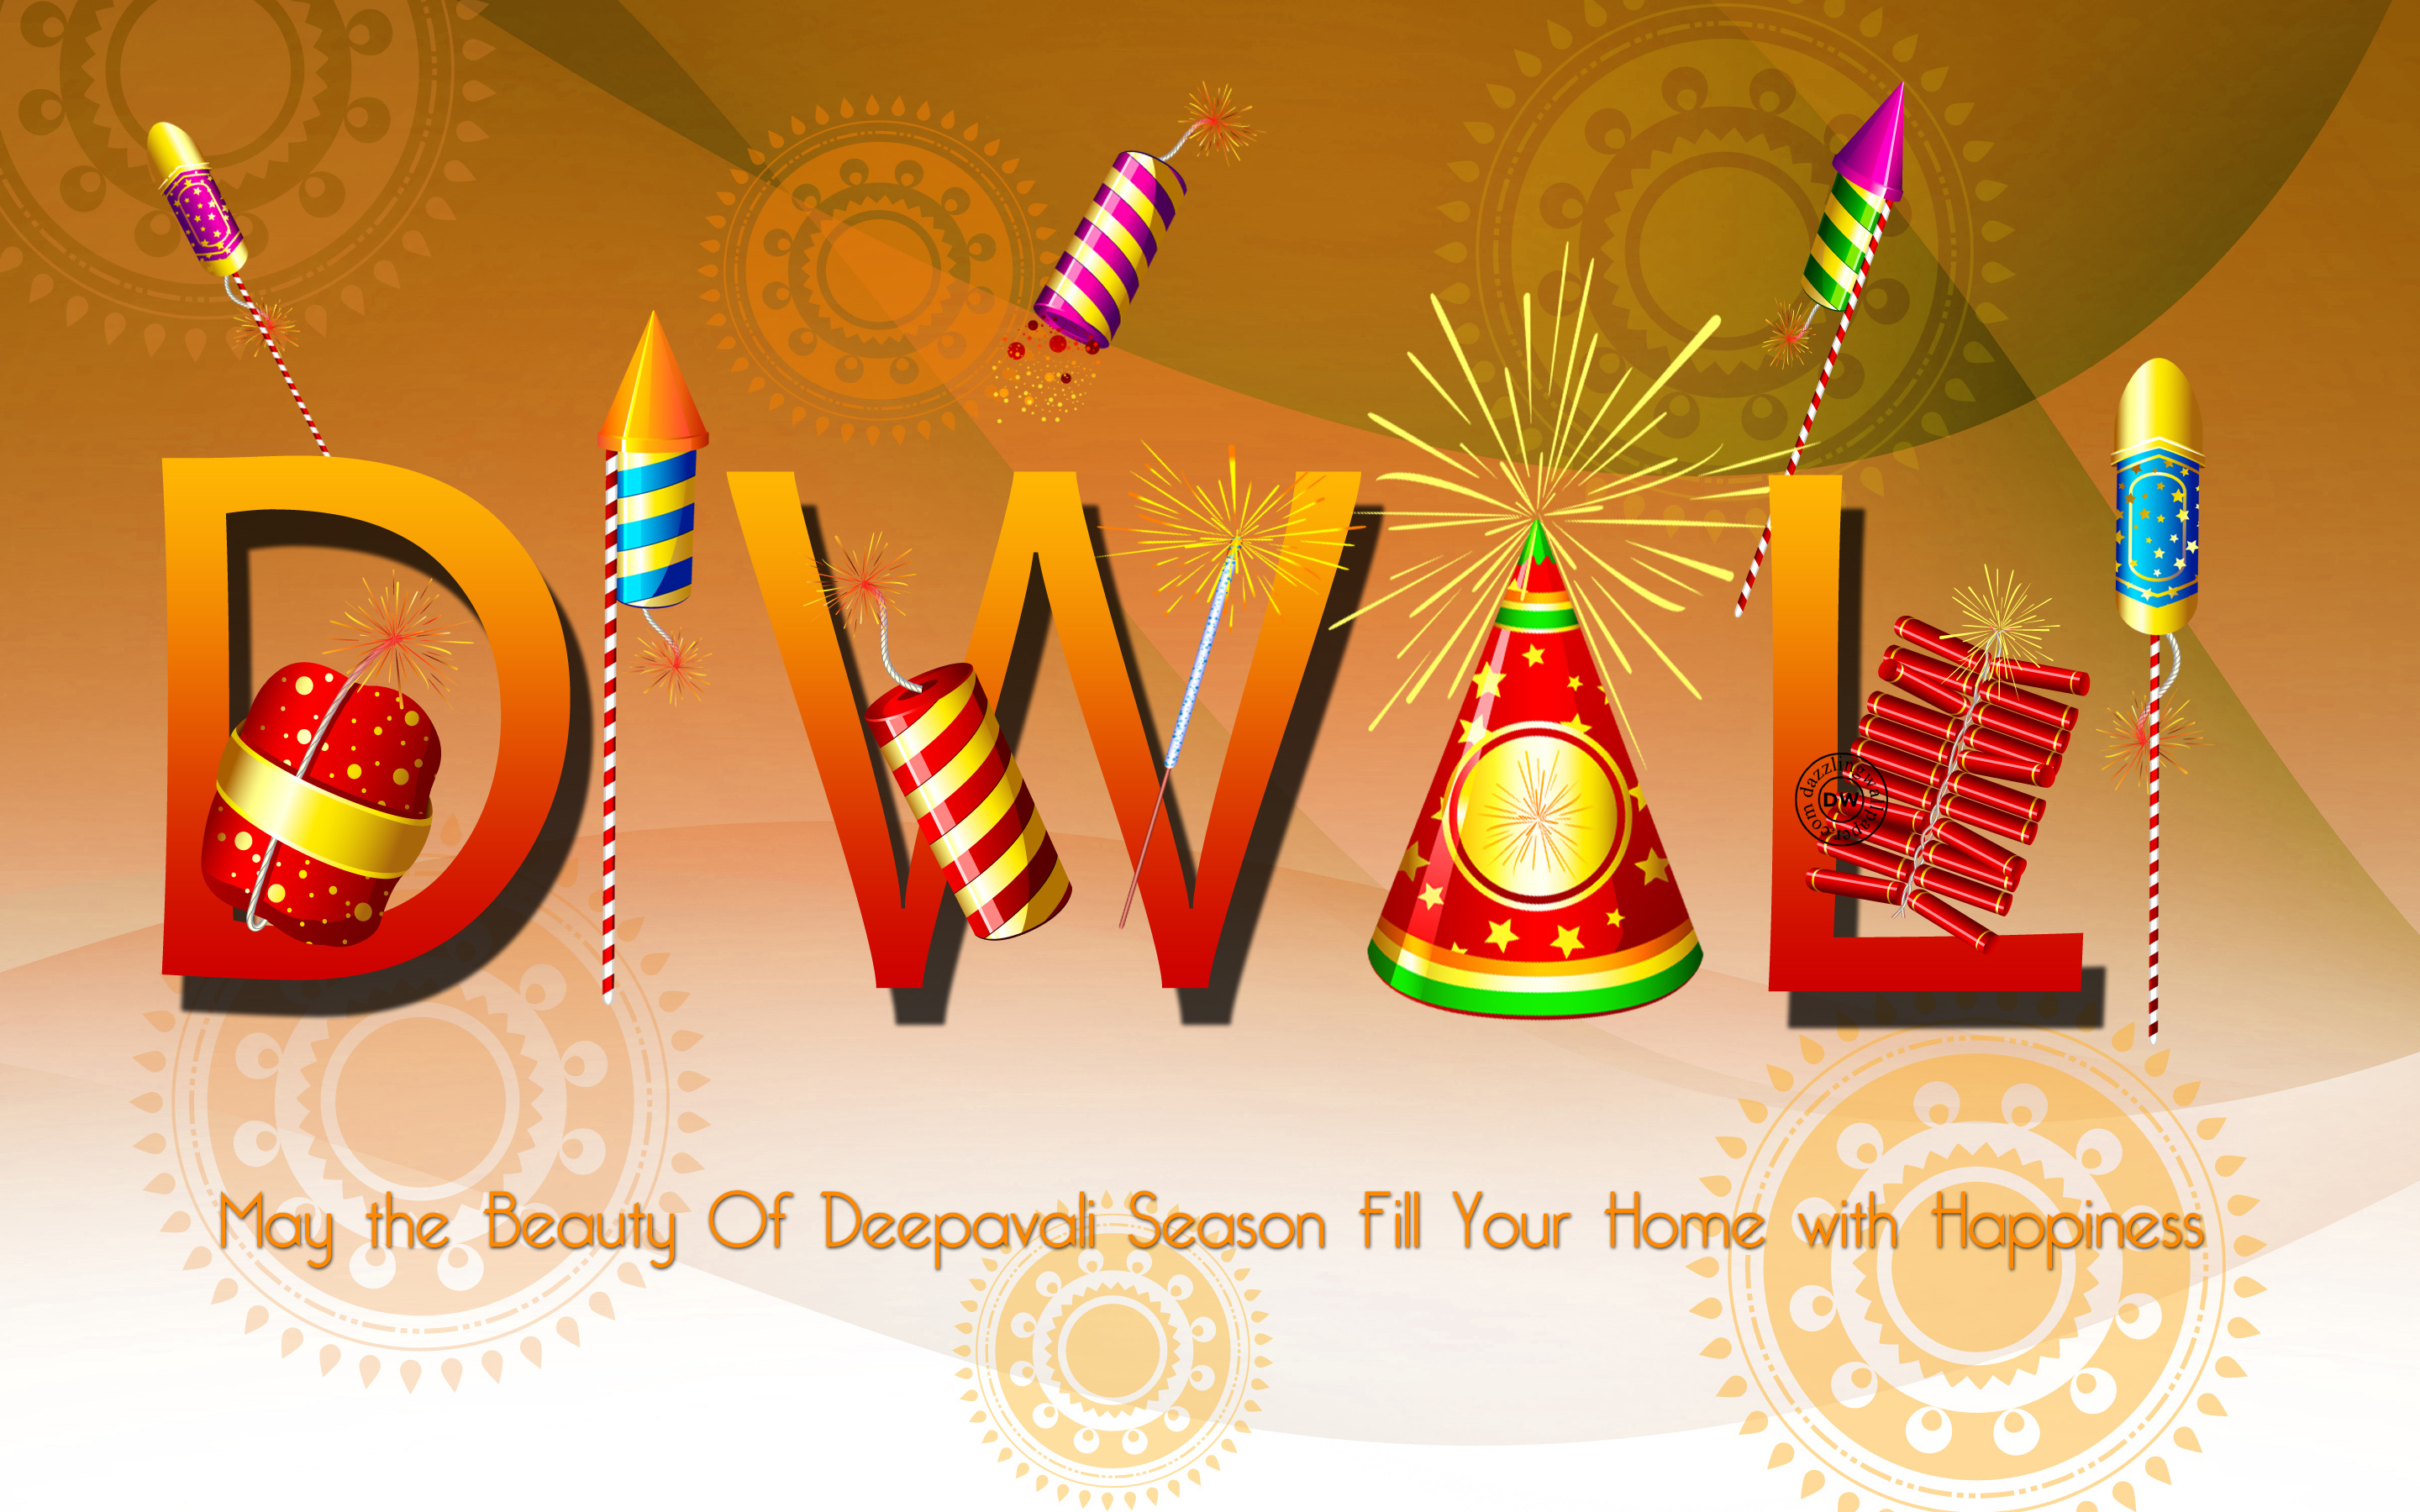 Happy Diwali 2017 images, quotes, wishes, SMS, greetings, messages ... for Deepavali 2017 Celebration  279cpg